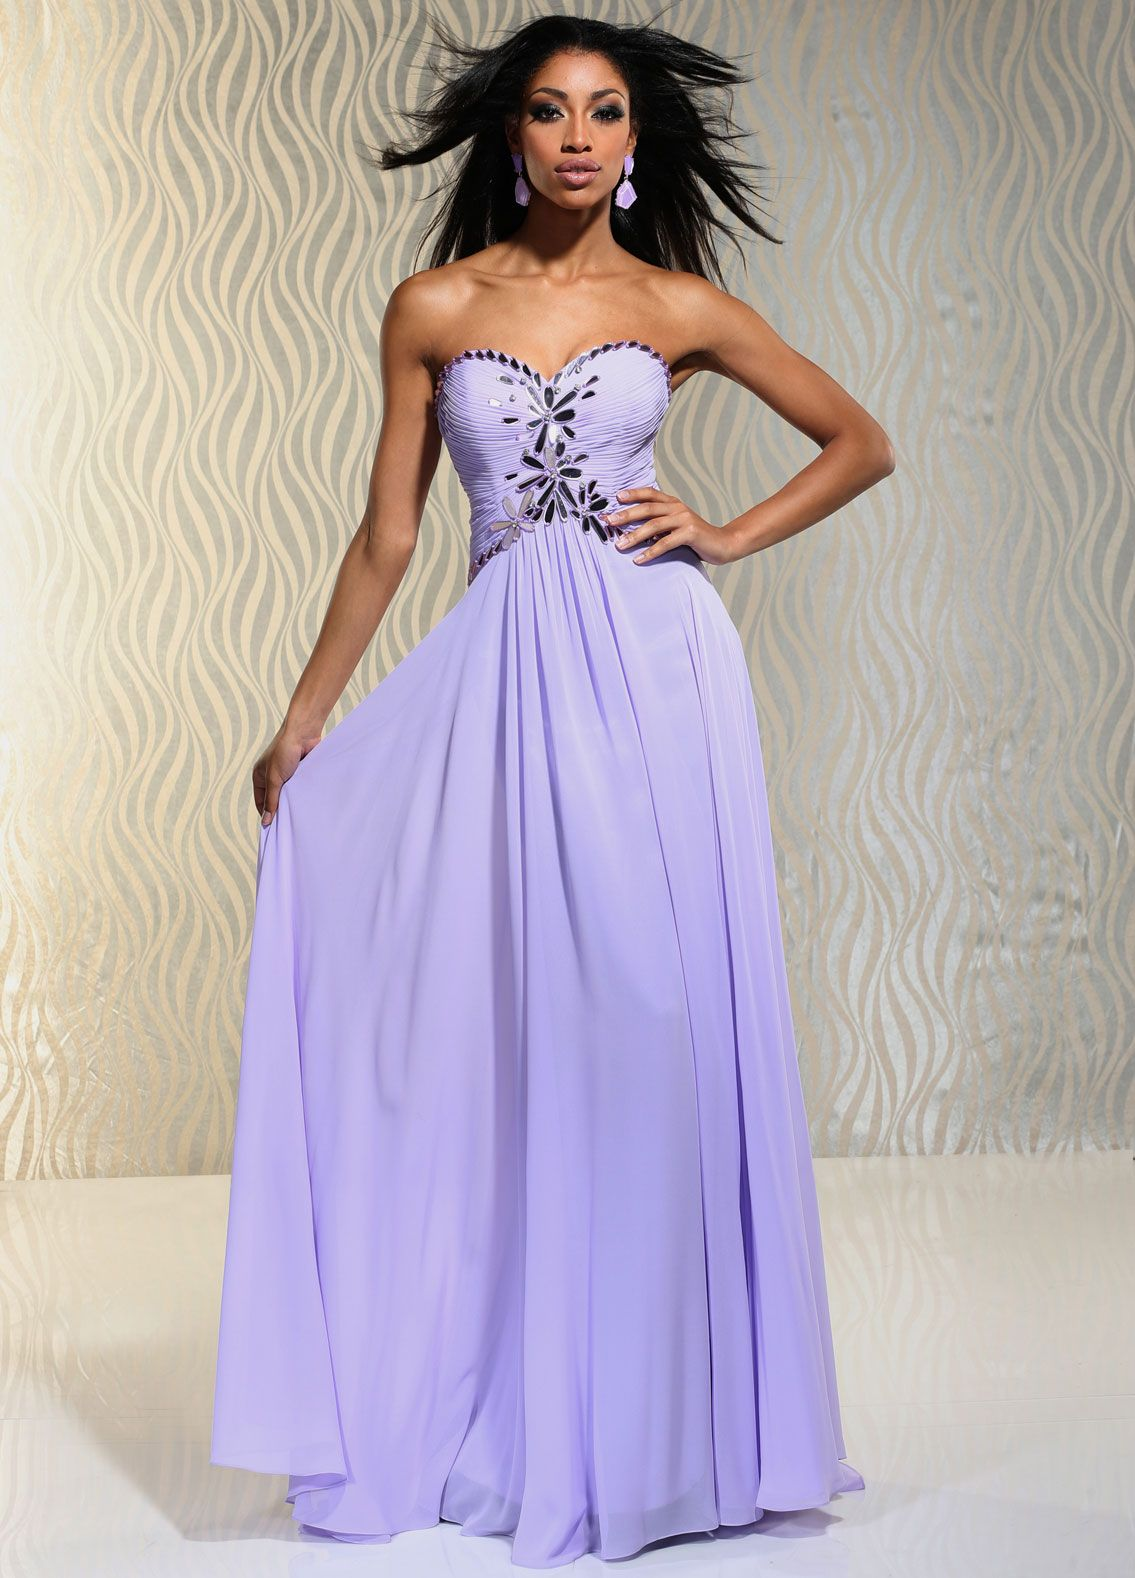 Prom Gowns By Xcite Prom Prom Prom Dresses Prom Dresses